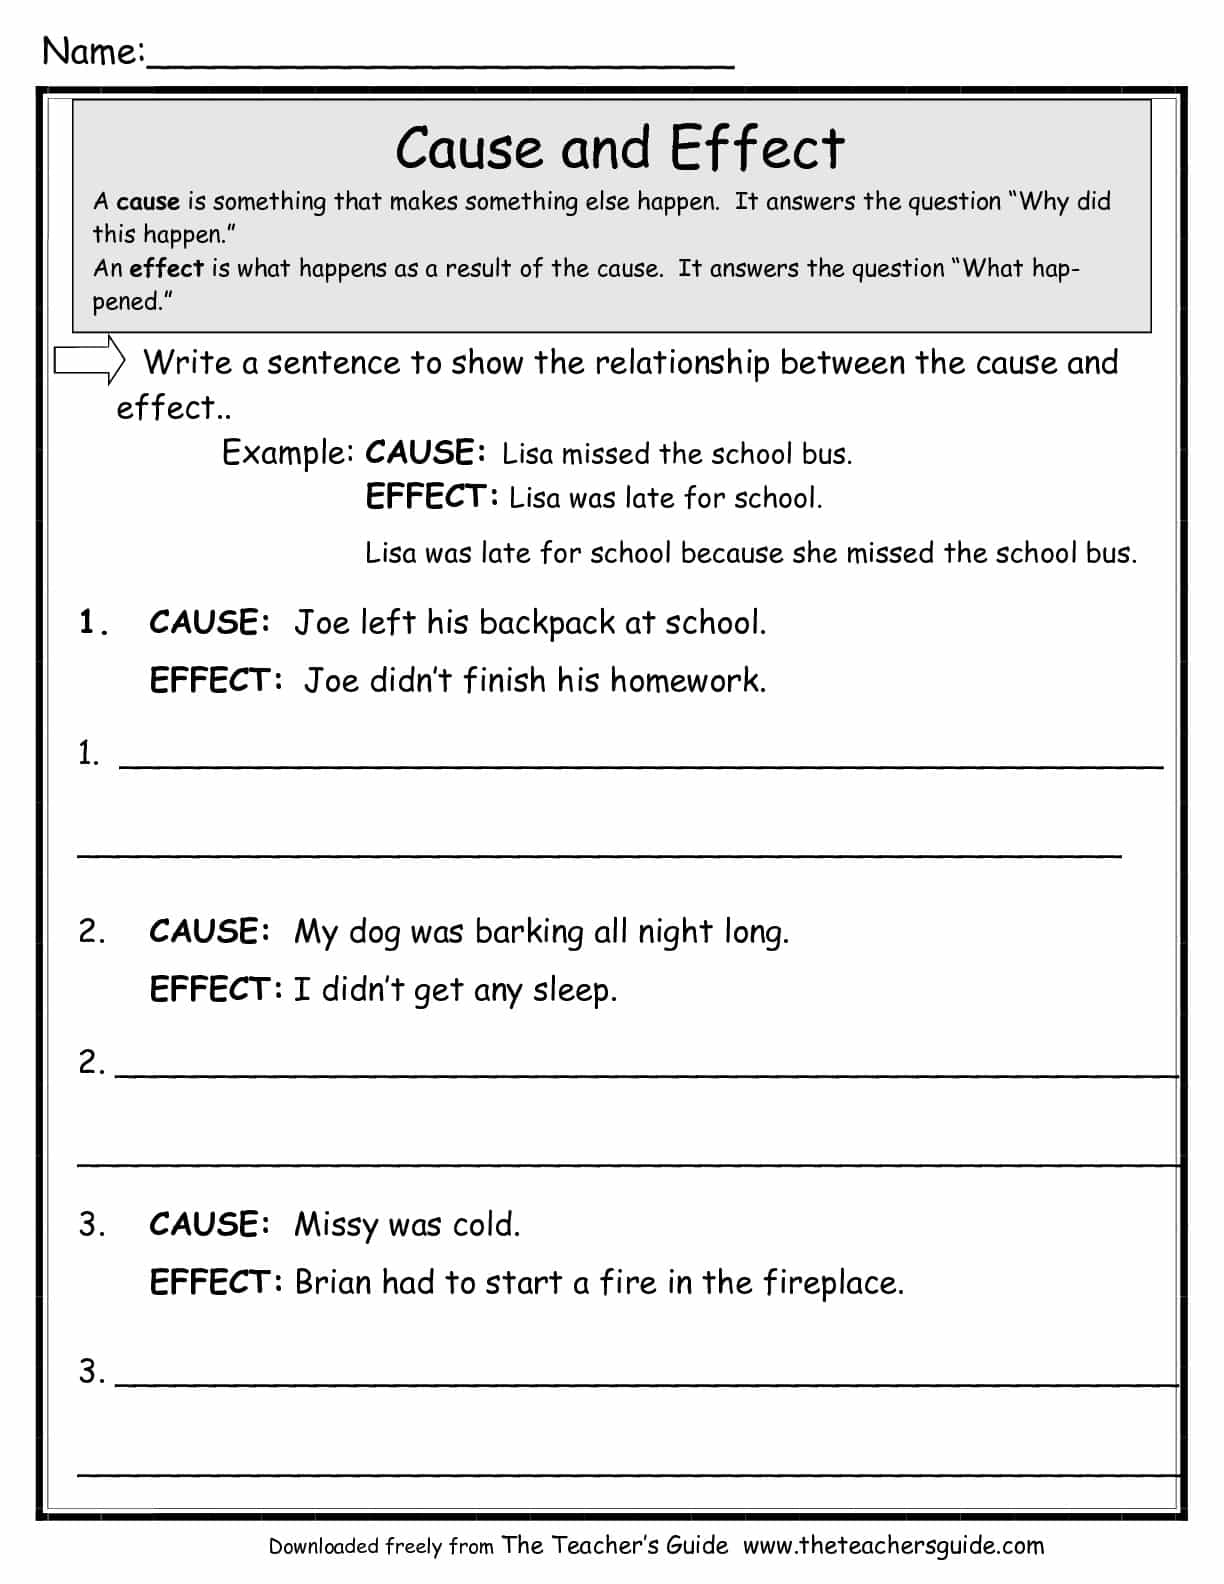 Free printable second grade reading comprehension sheets and free printable reading comprehension packets